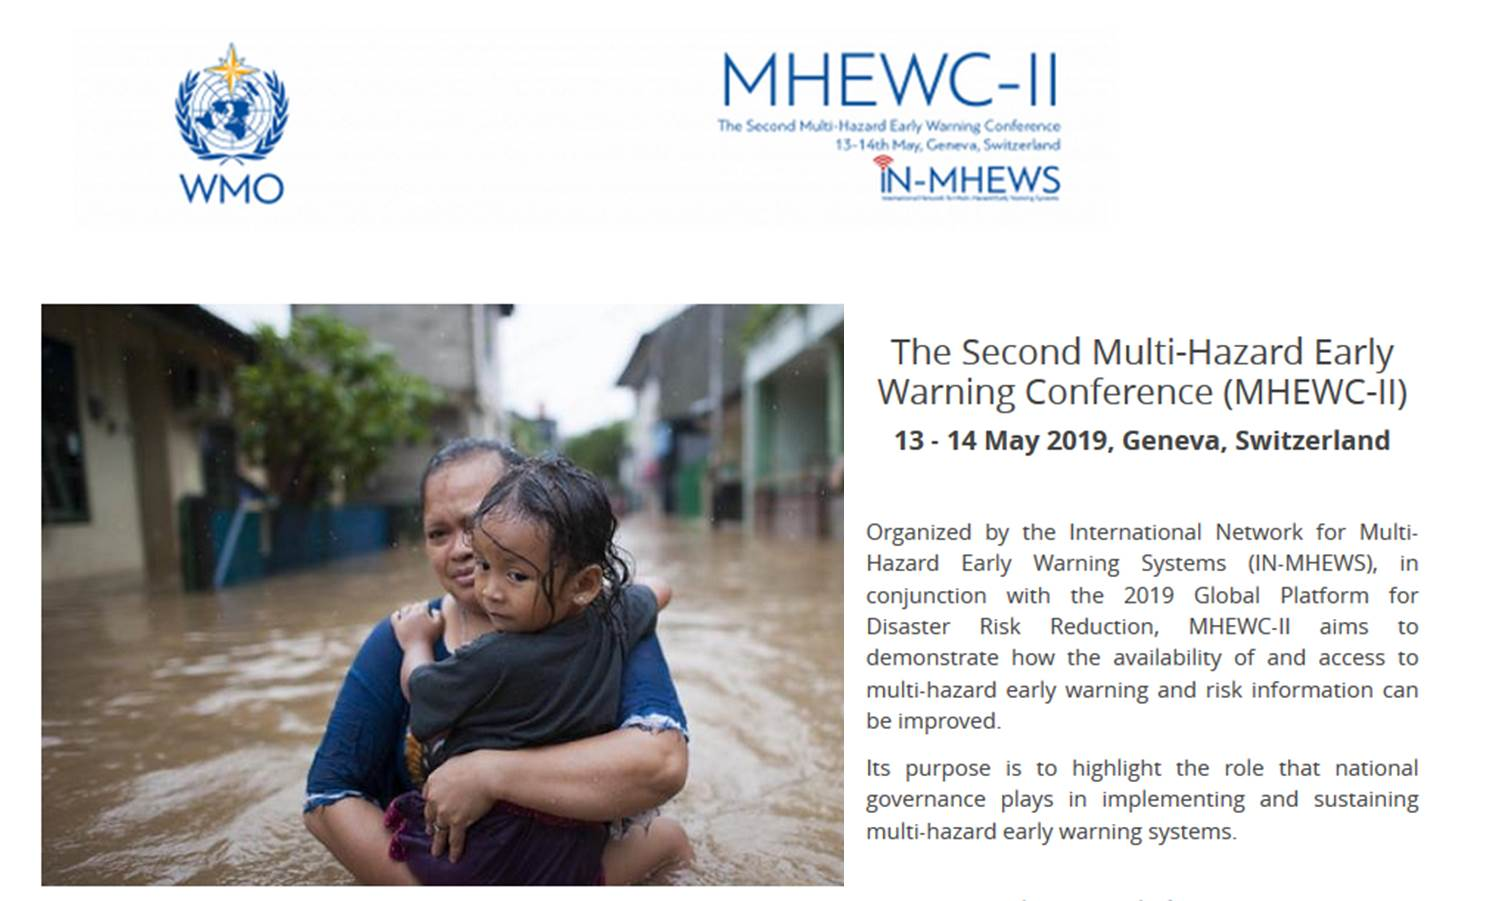 HIWeather in the second Multi-Hazard Early Warning Conference (MHEWC-II)